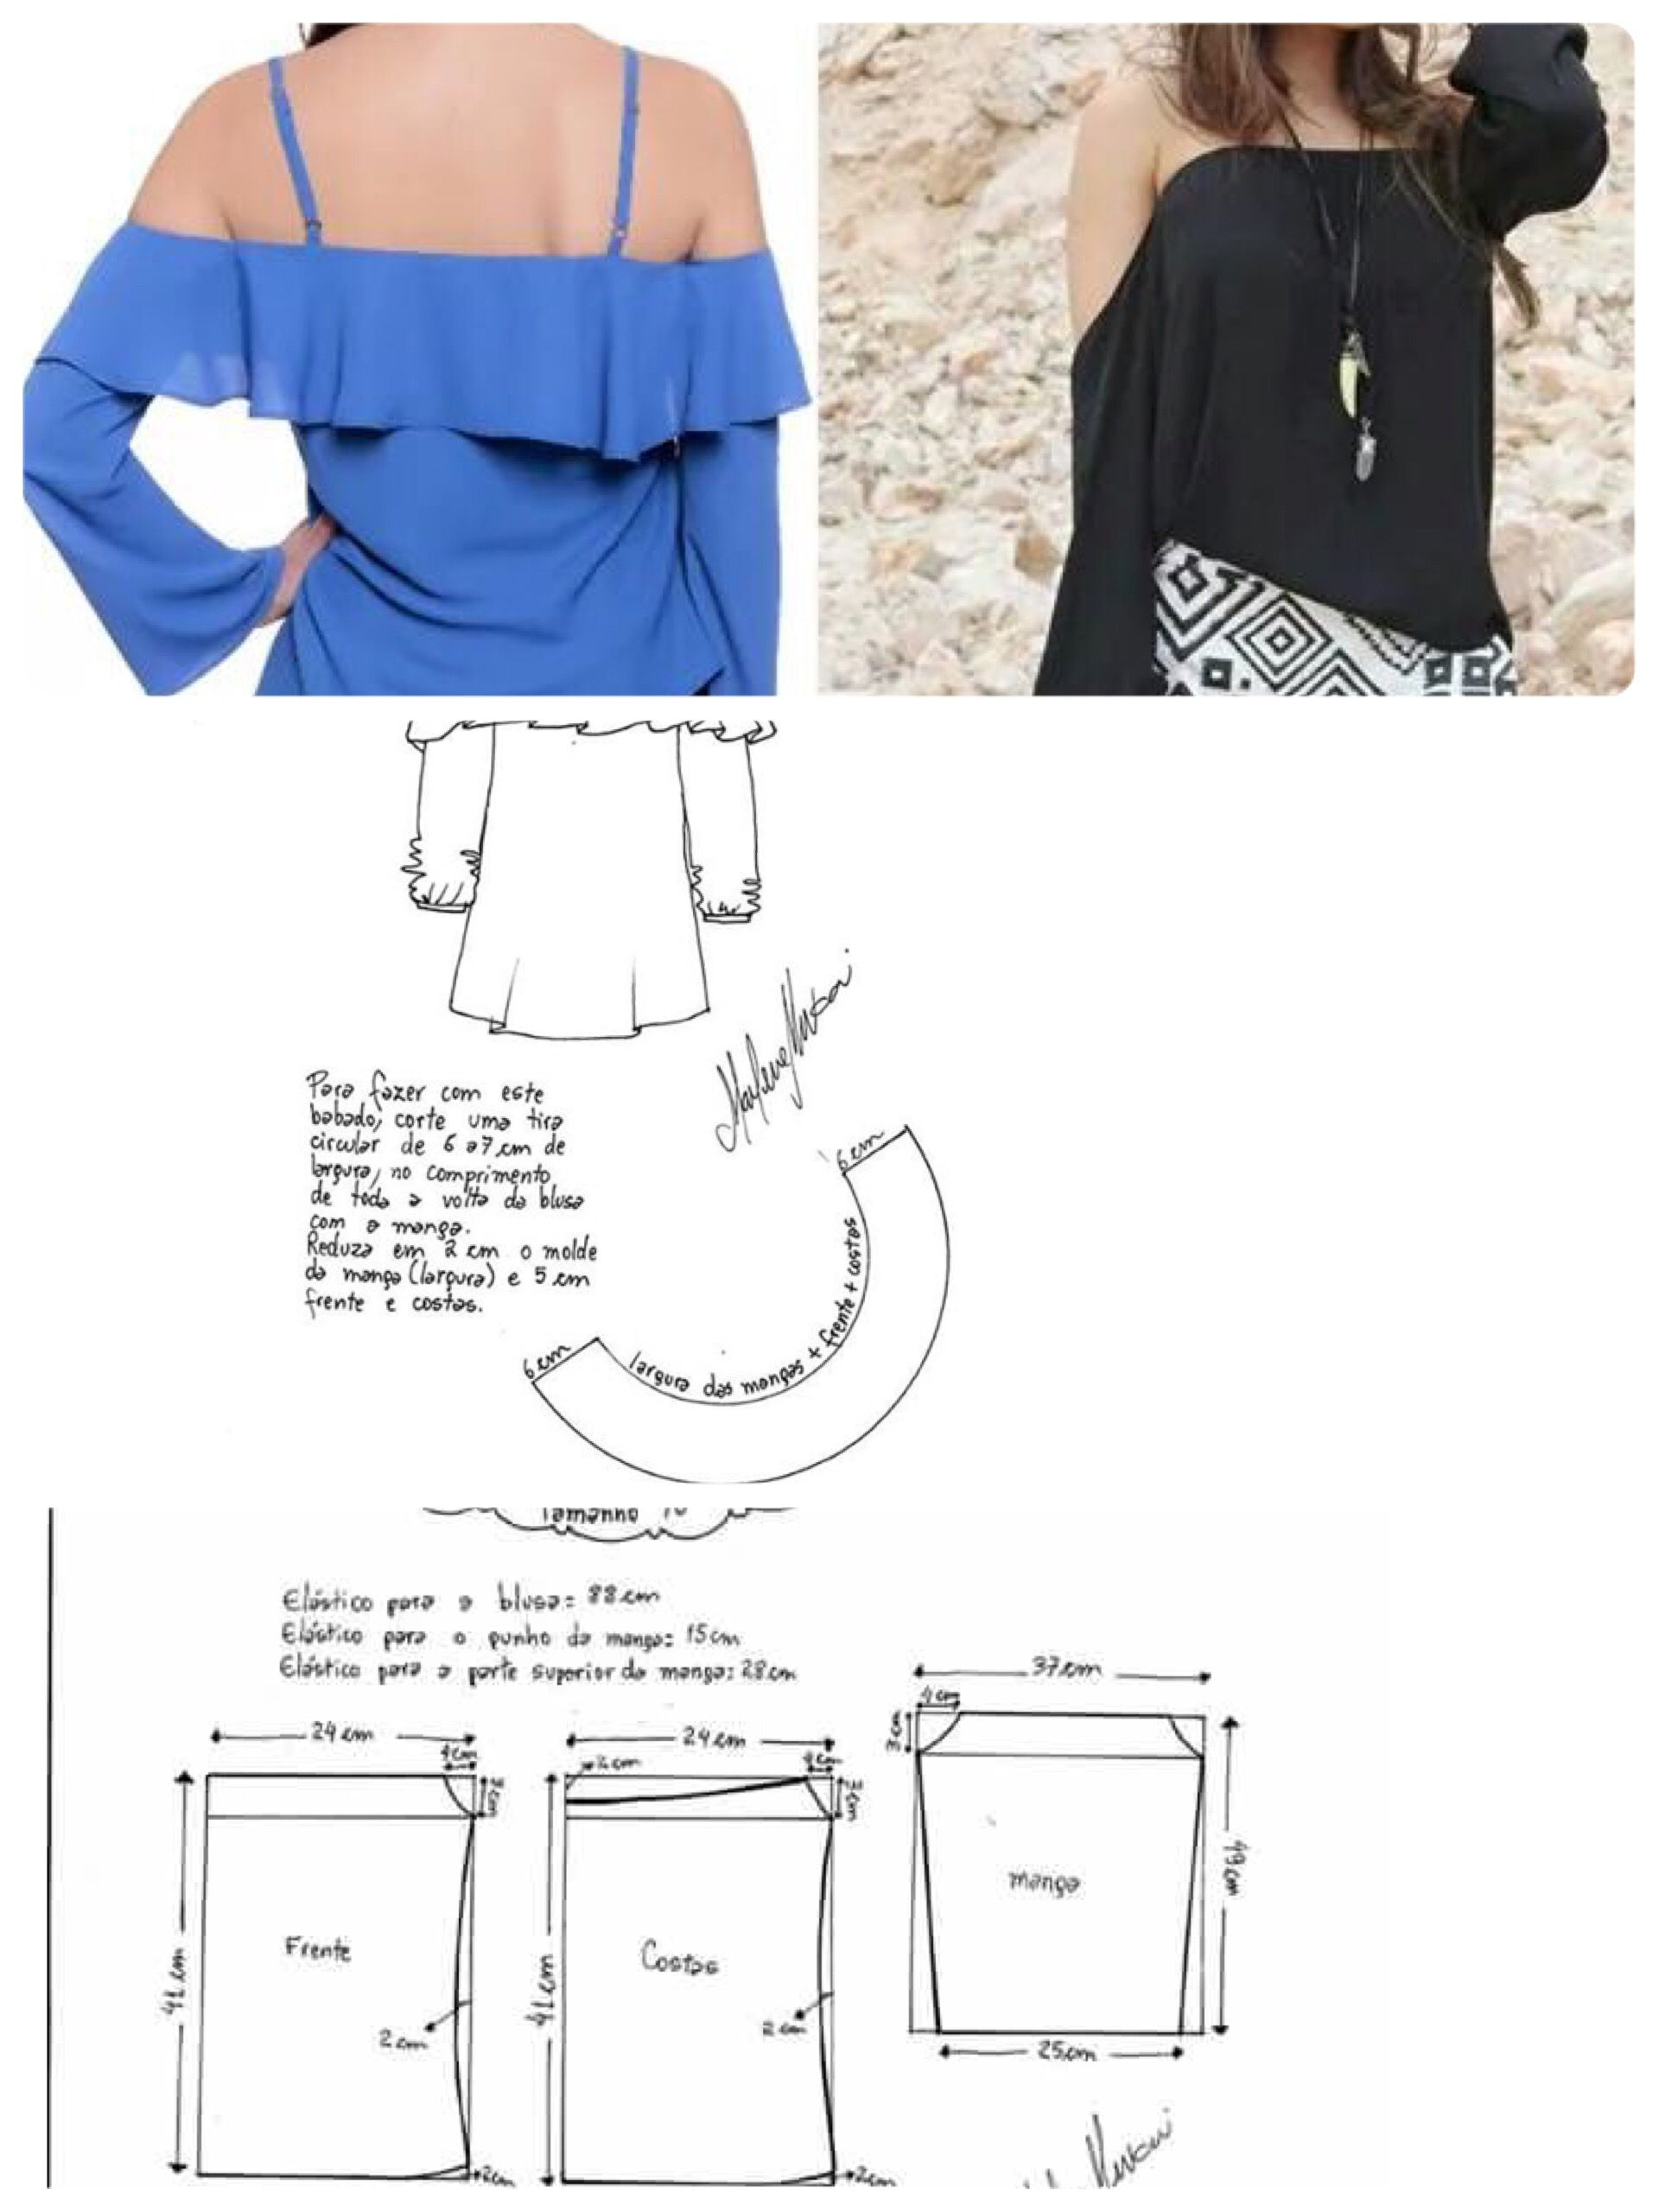 Off shoulder blouse | Patrones / moldes / patterns | Sewing, Sewing ...